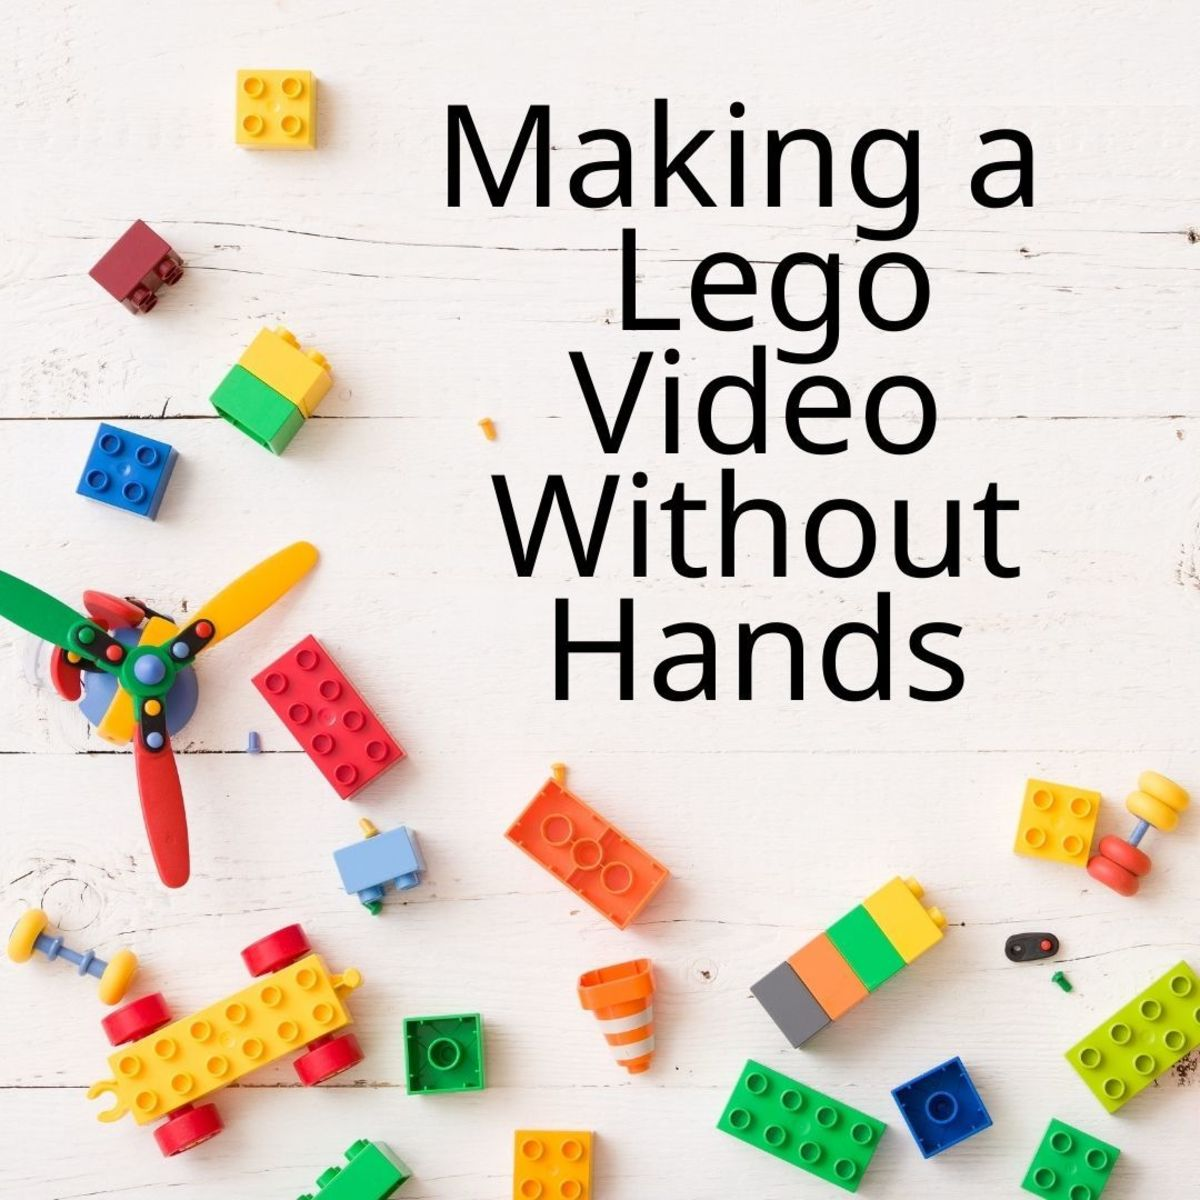 How to make a lego video without hands